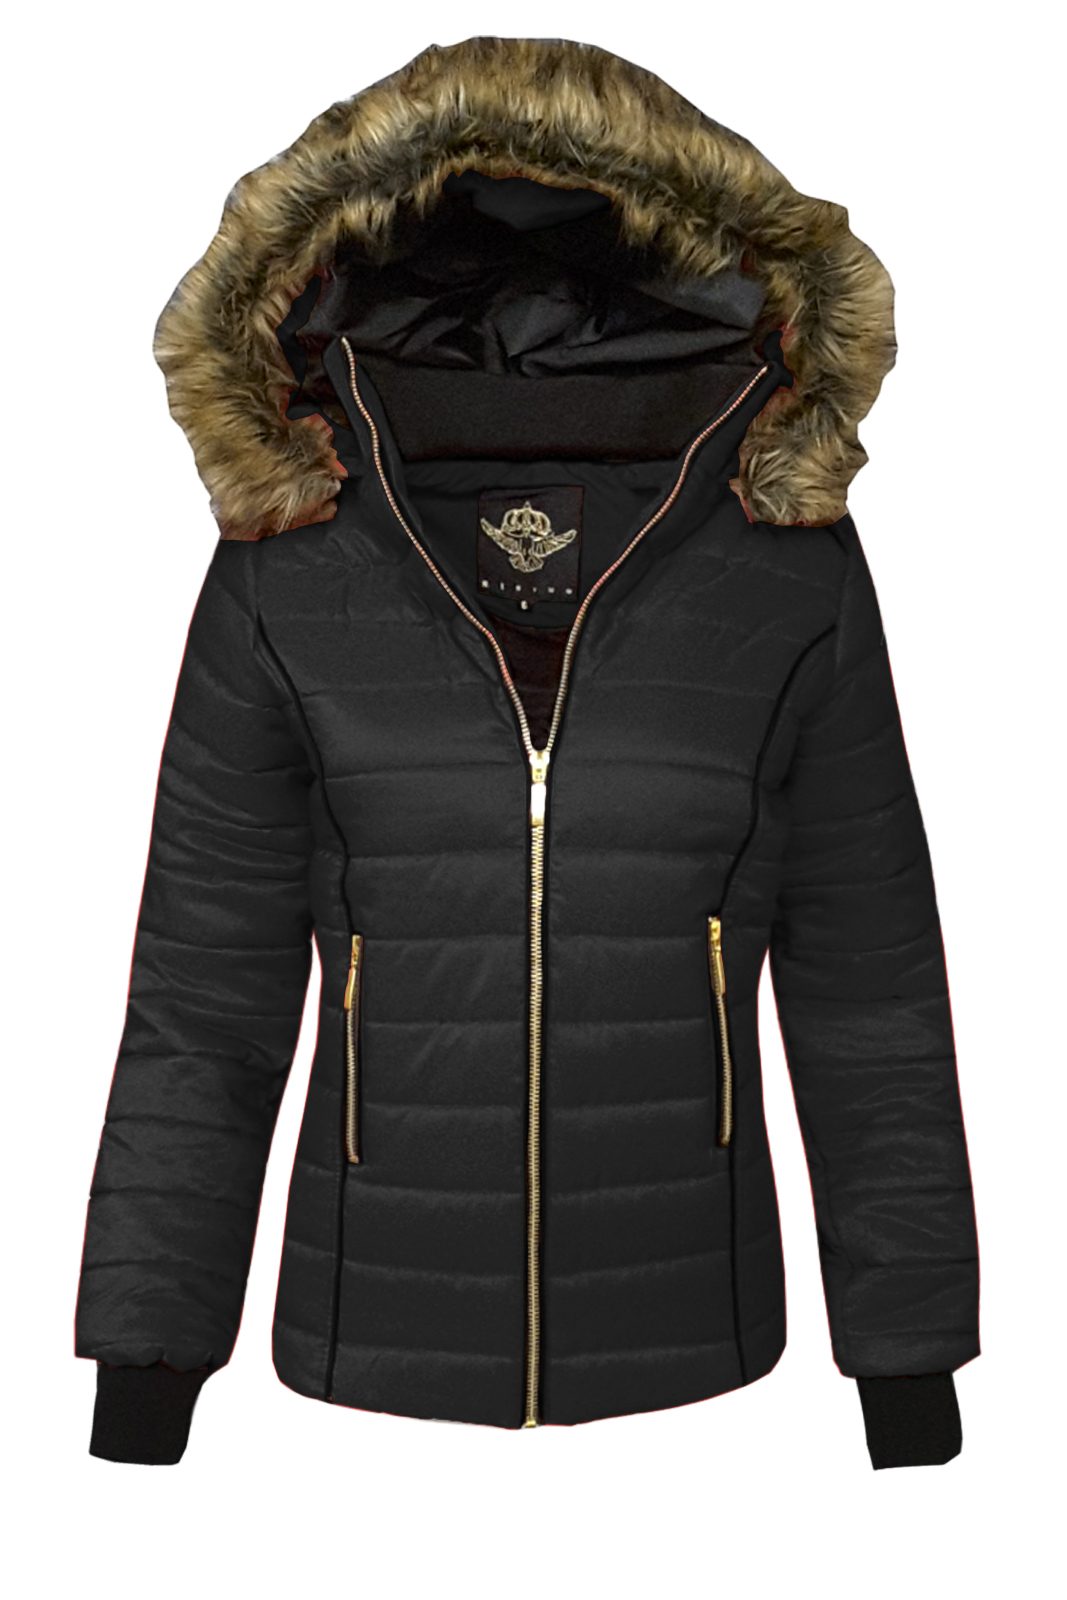 Catch One Ladies Womens Puffer Bomber Coat Padded Quilted